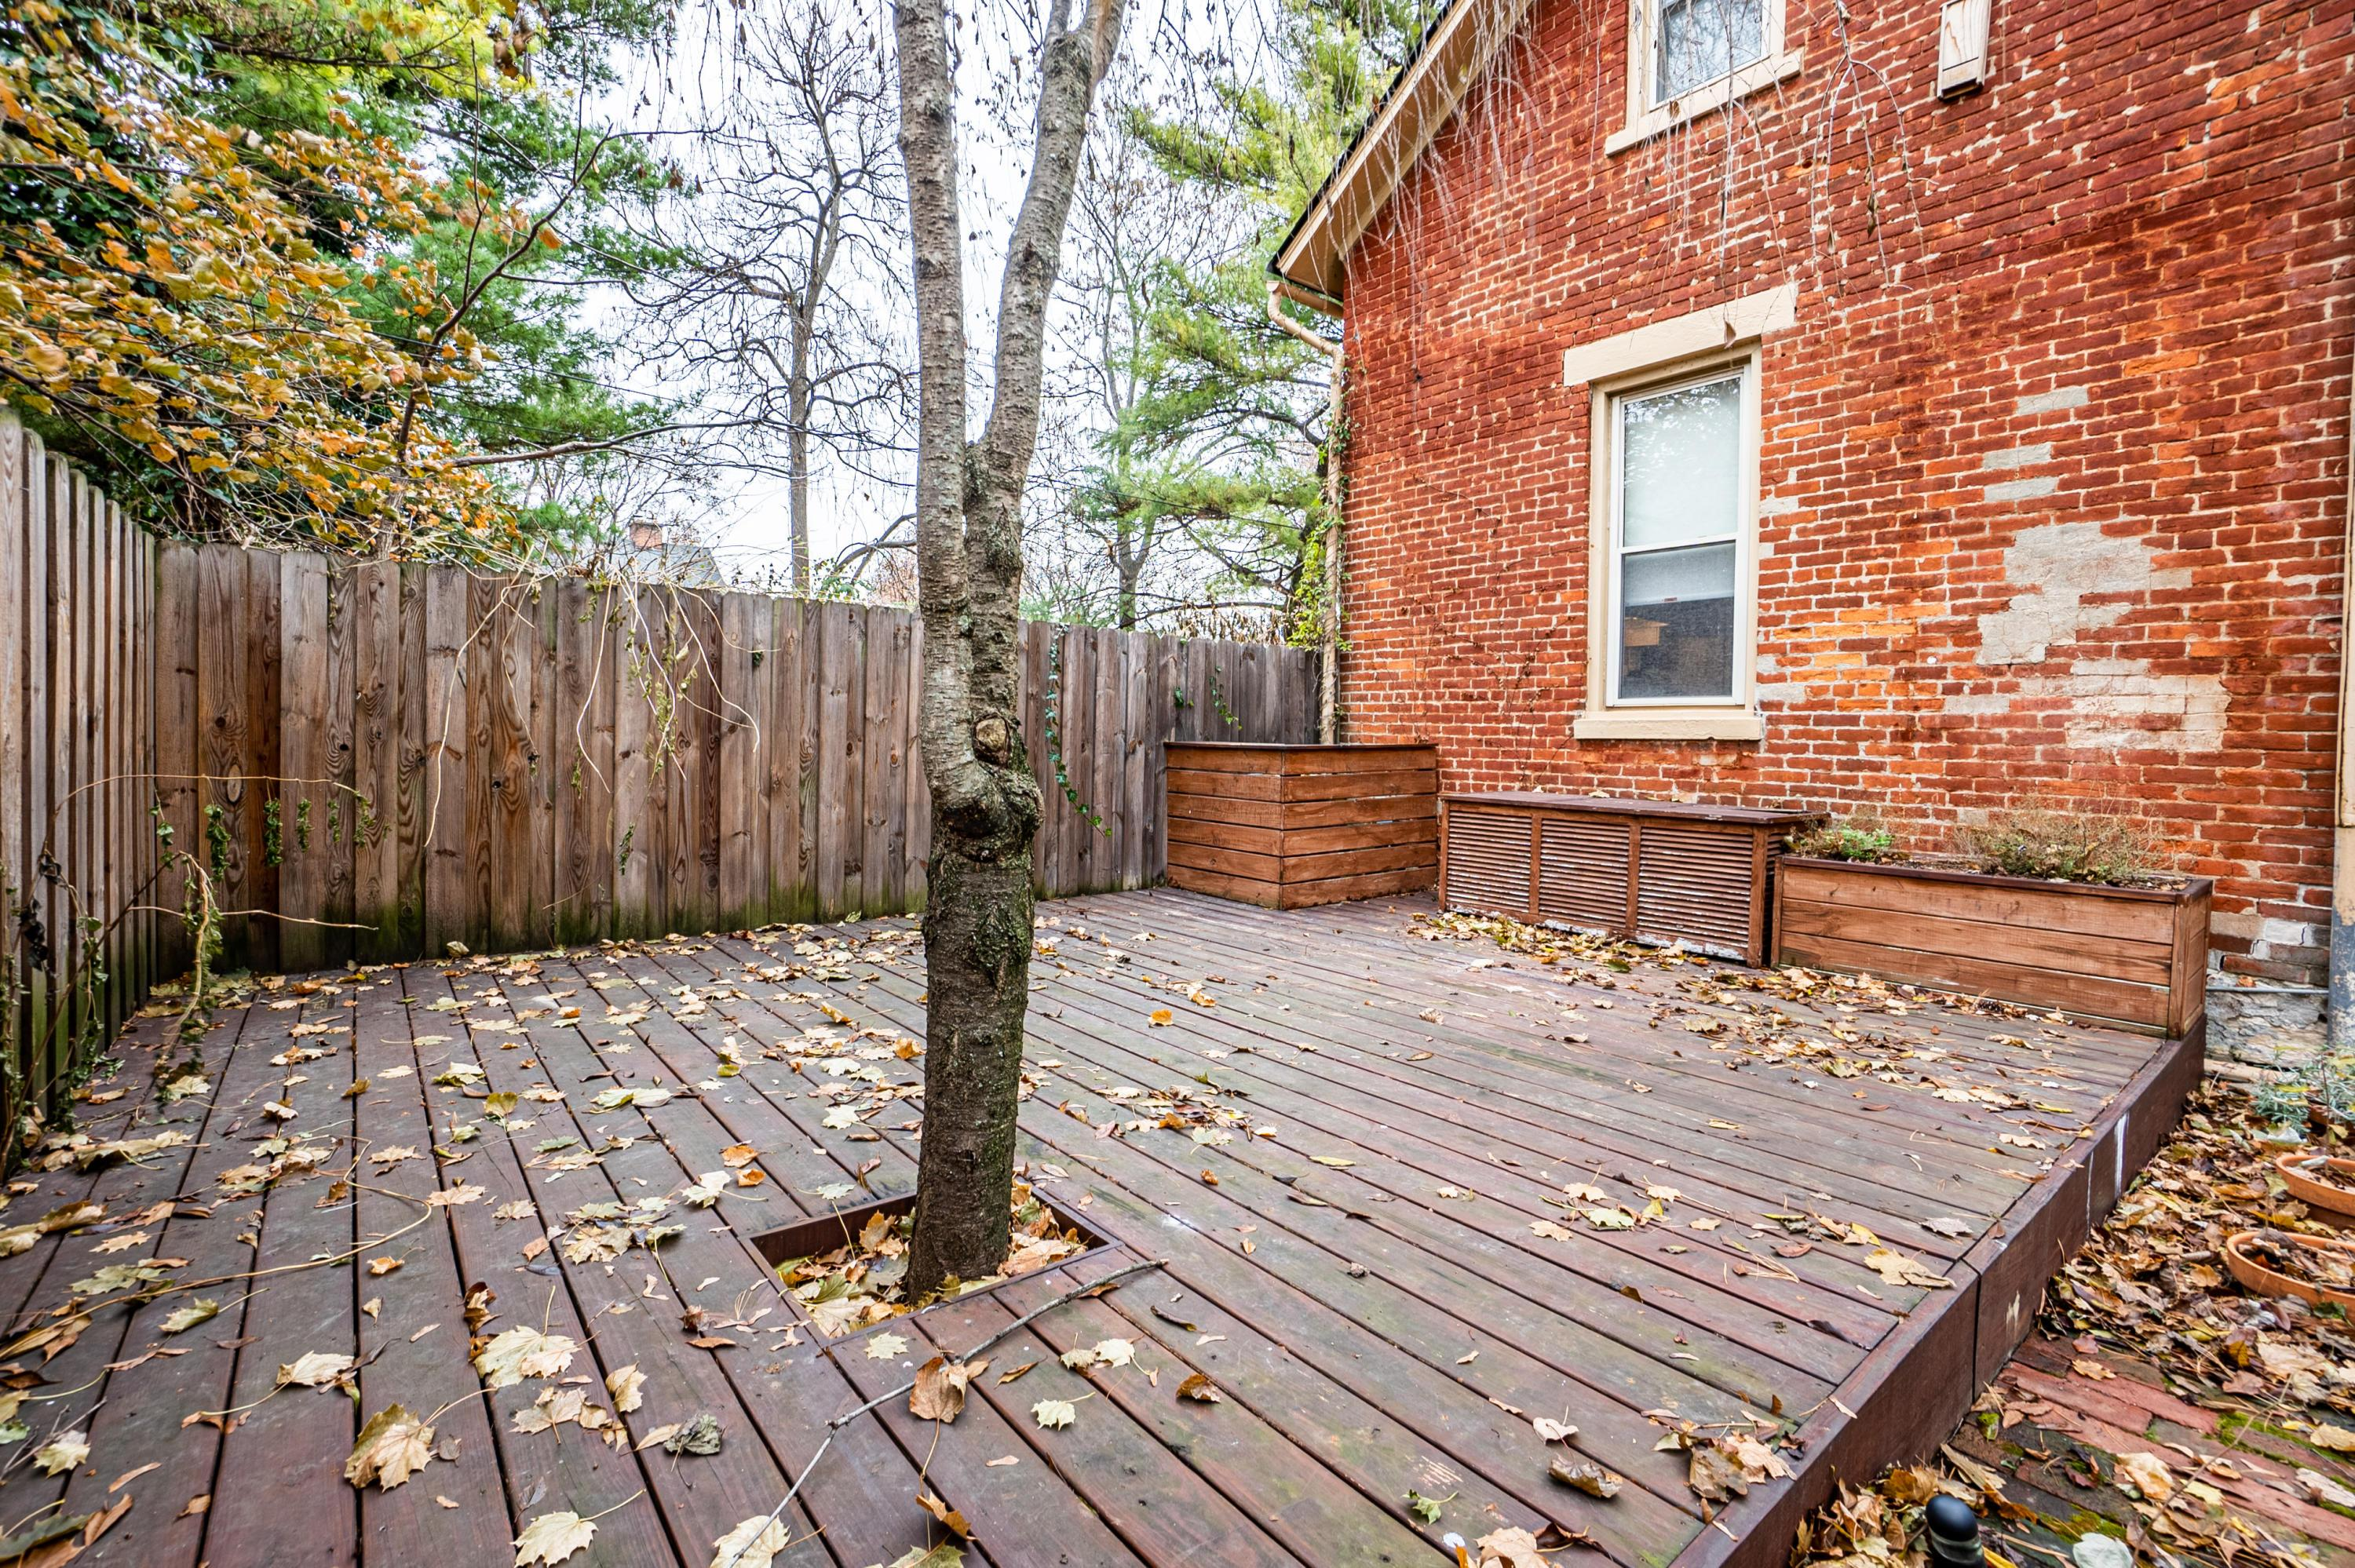 Photo of 367 Berger Alley, Columbus, OH 43206